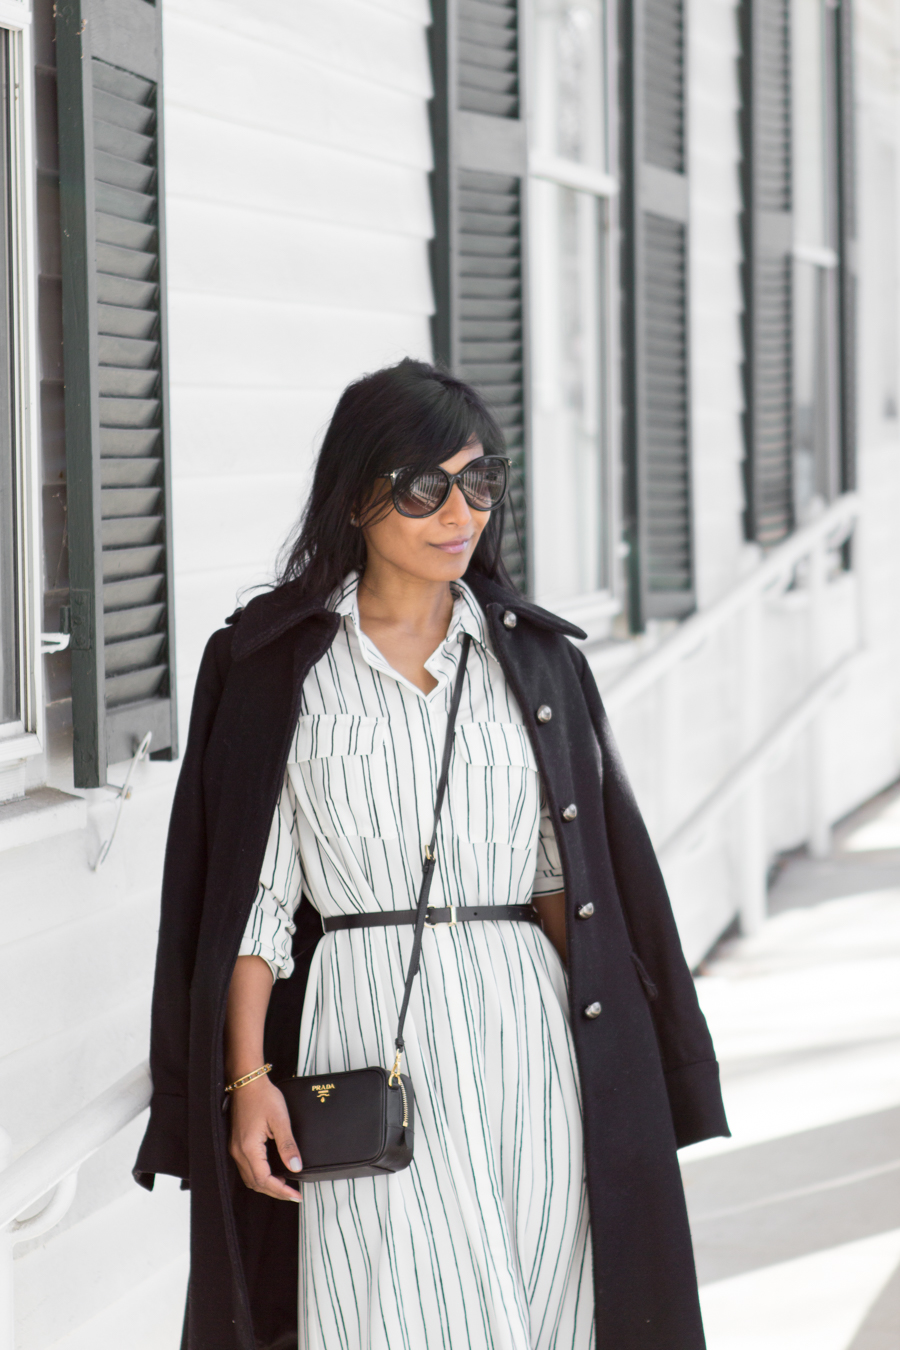 spring style, street style, pinstripe shirtdress, office style, dress for work, oversized sunglasses